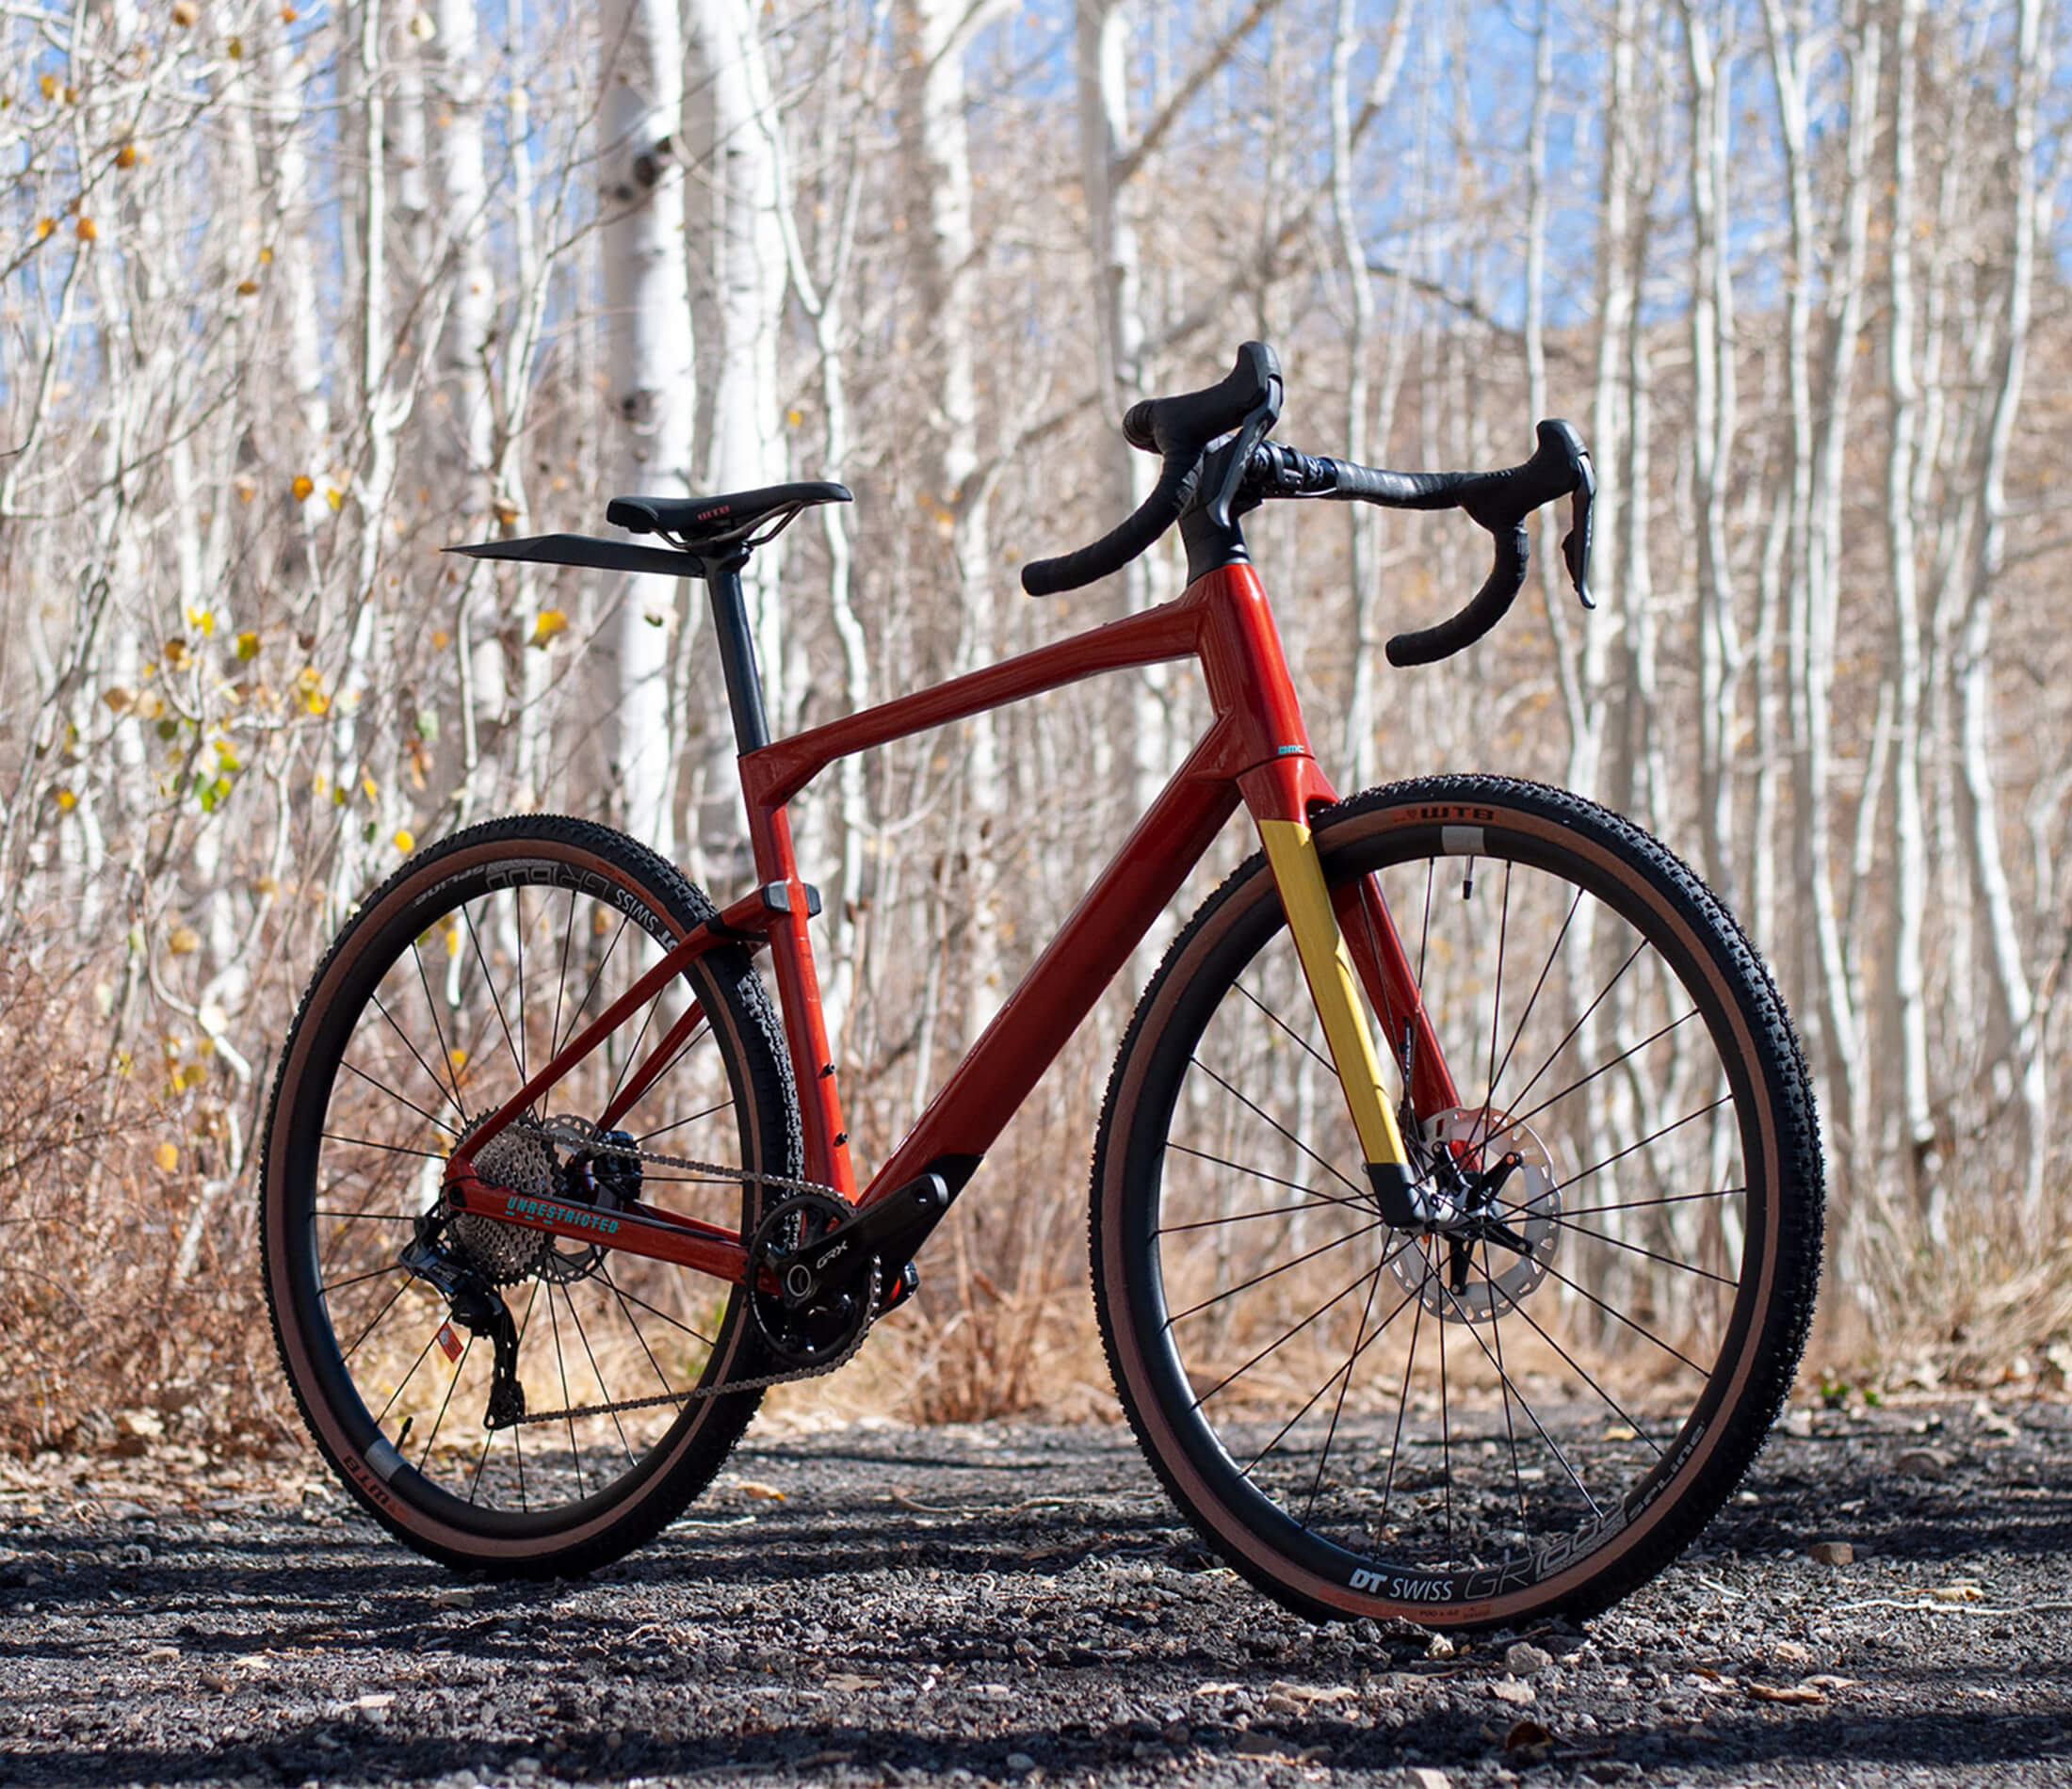 BMC URS TWO Disc Sale - Contender Bicycles